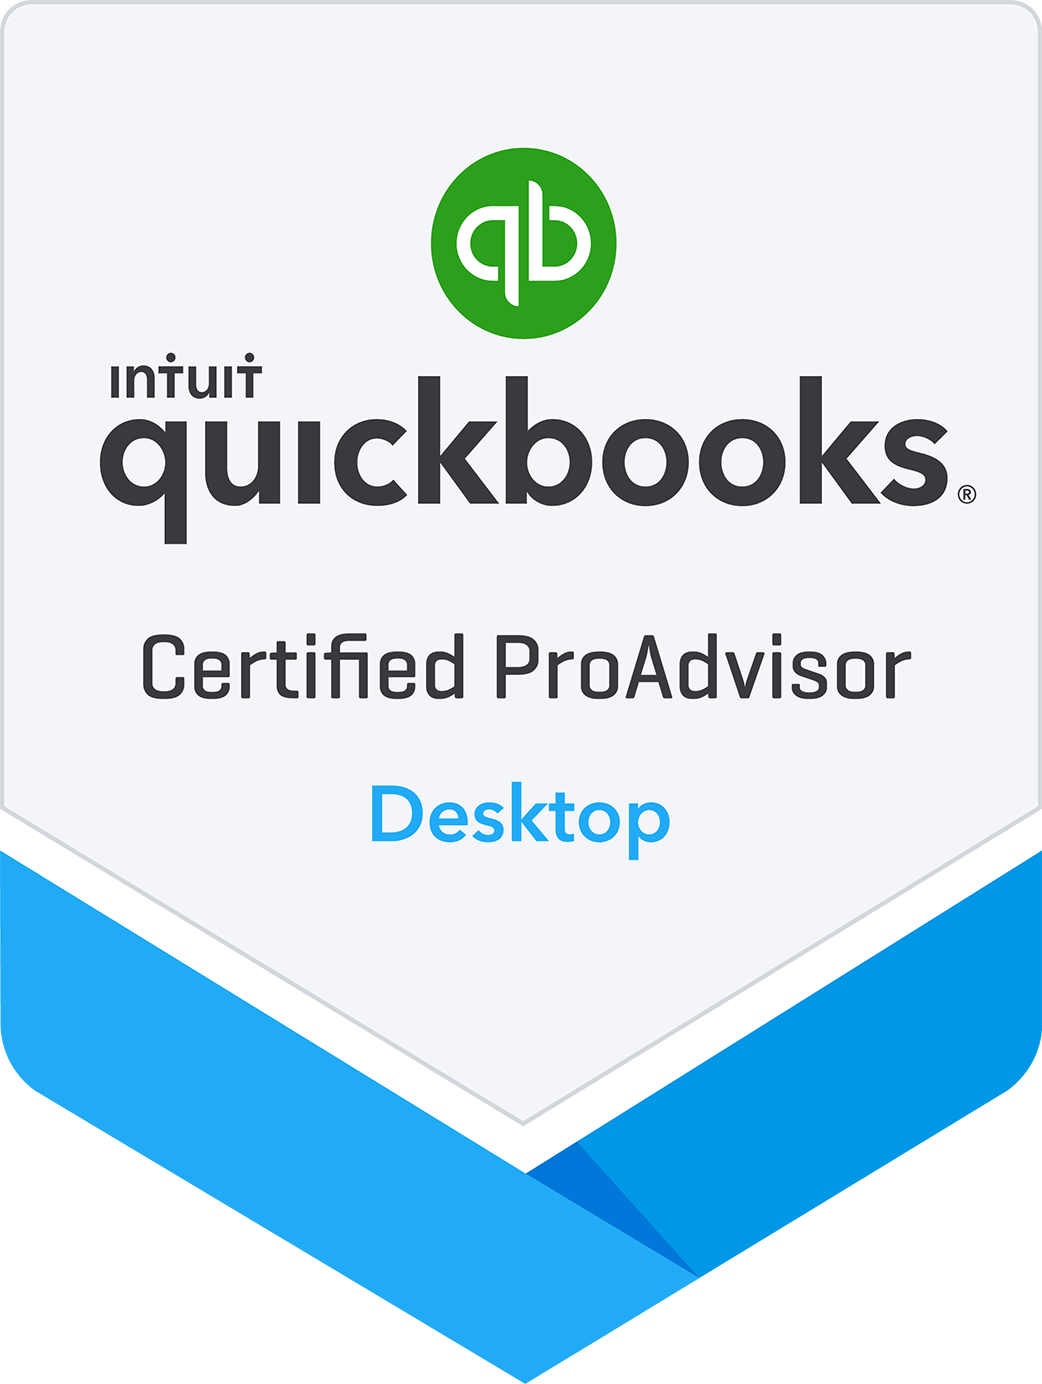 QuickBooks Proadvisor in Southern California. Based in Carlsbad, CA